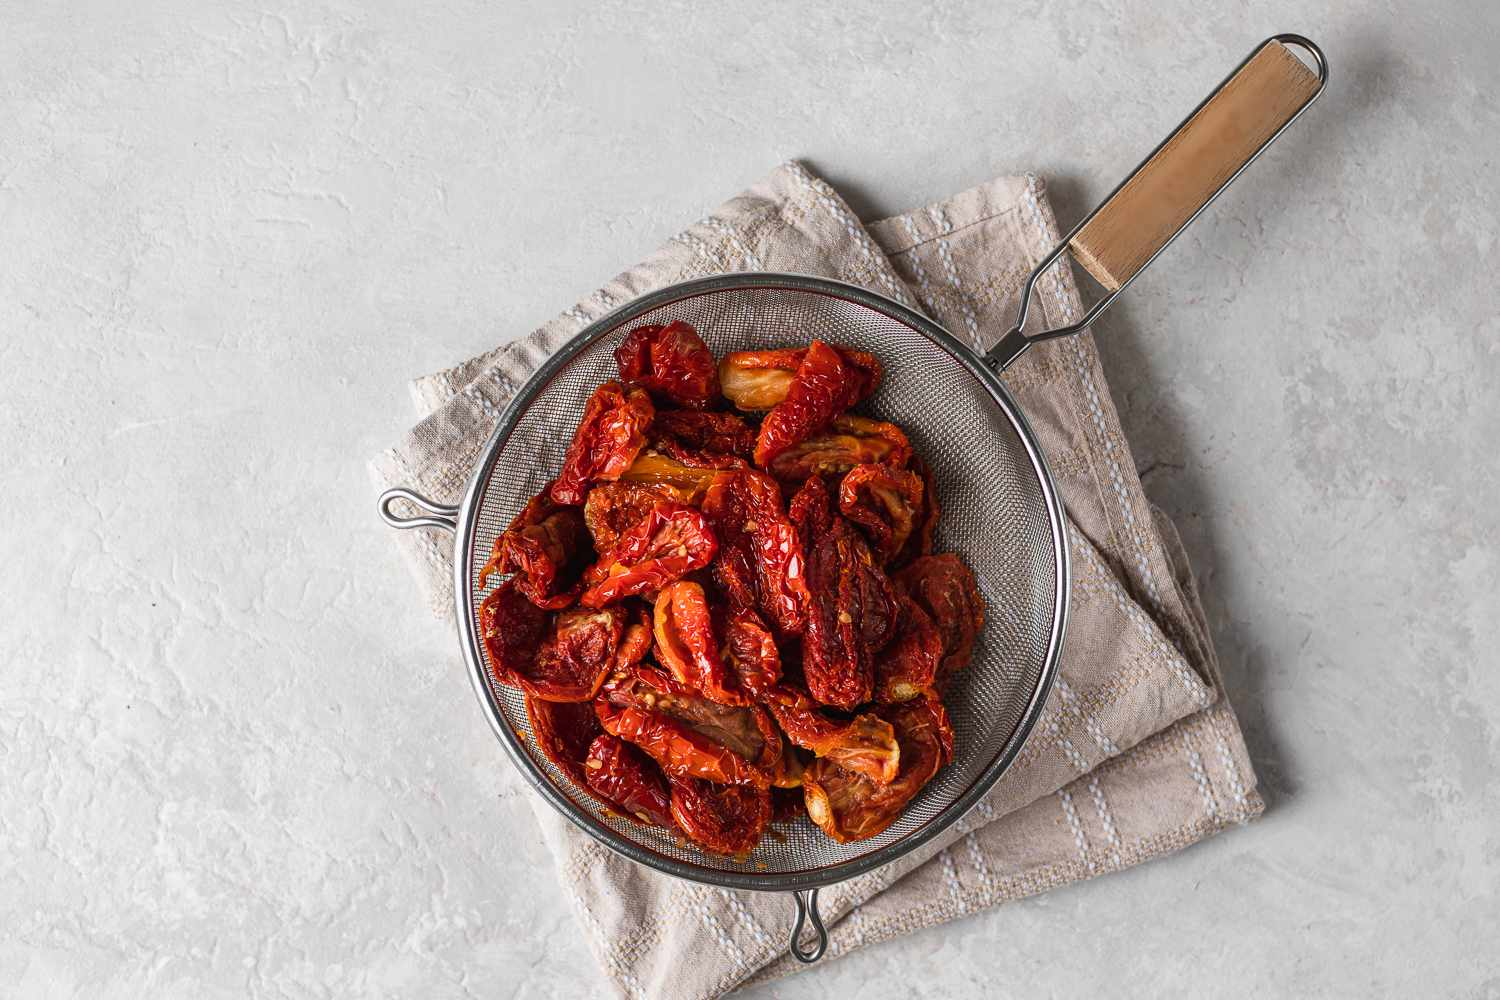 drain the tomatoes from the vinegar mixture